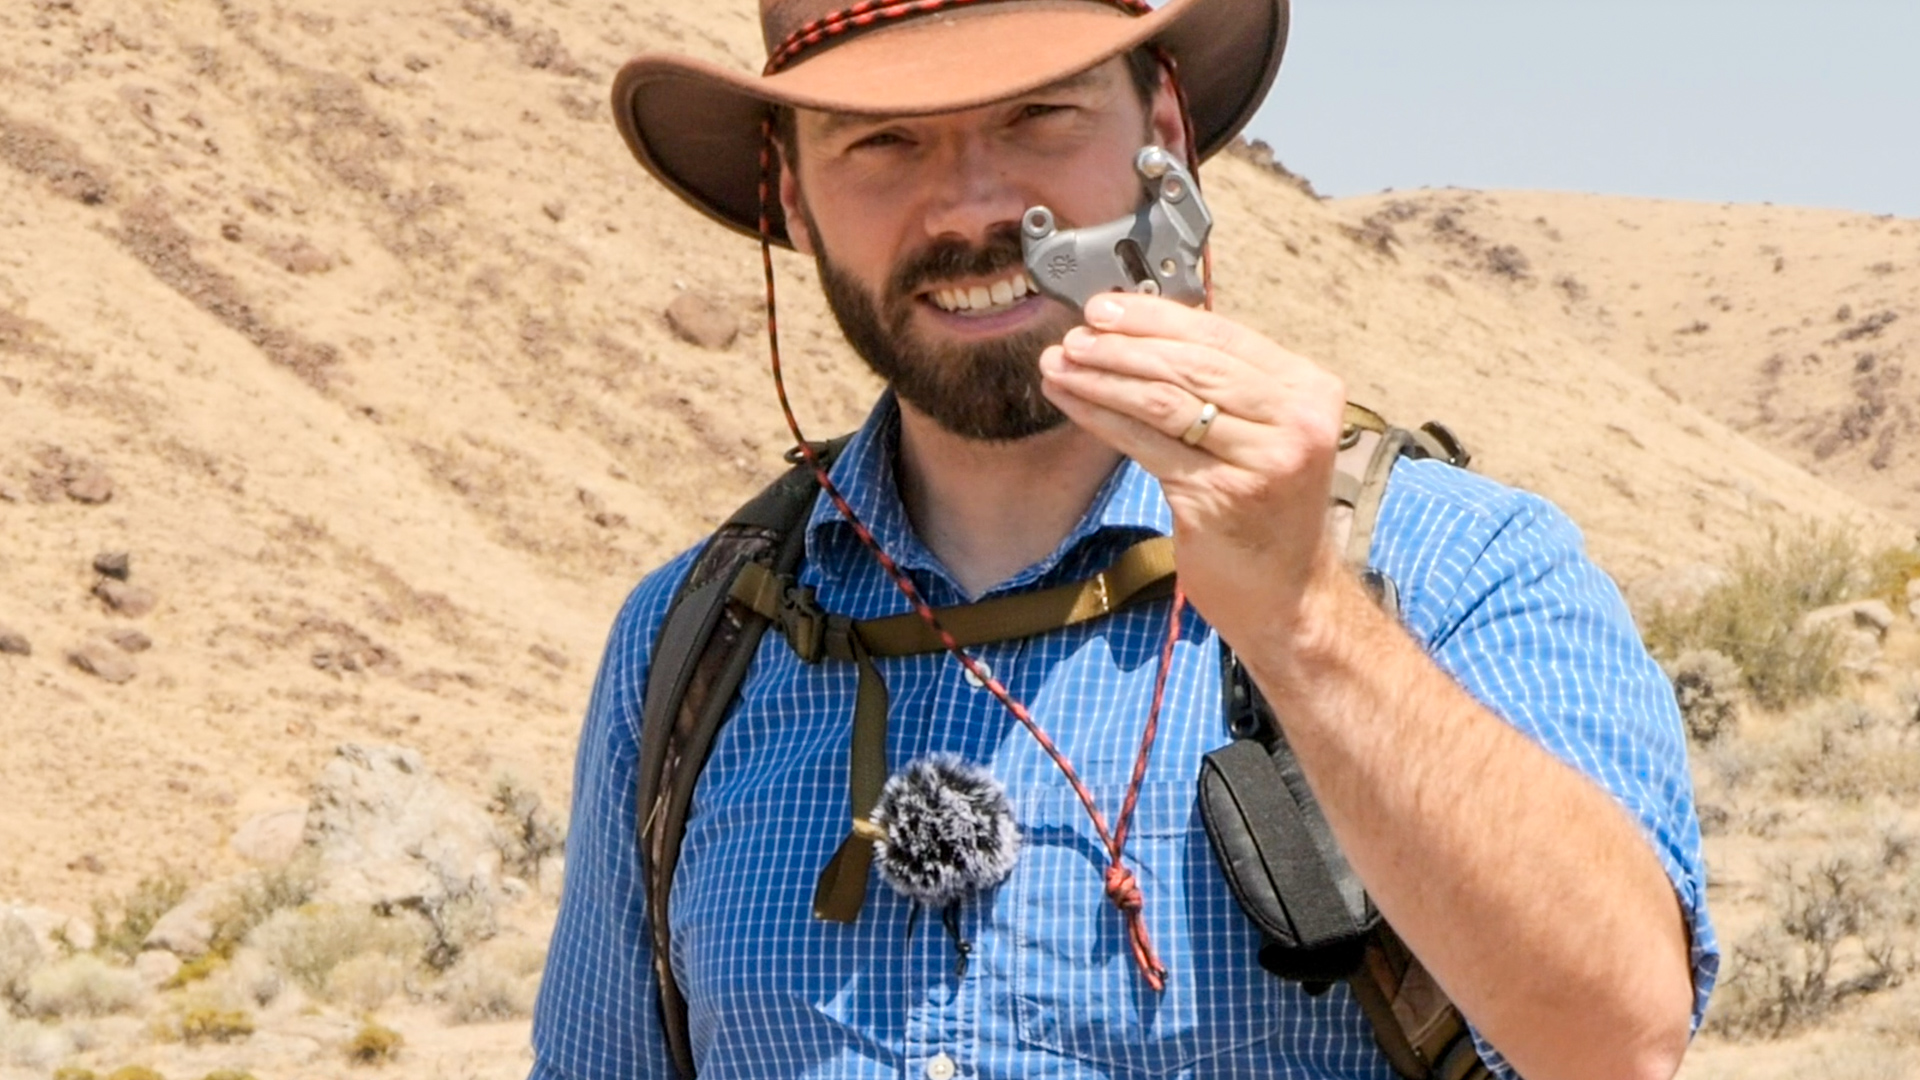 Gear review: Spider Holster's camera carry system